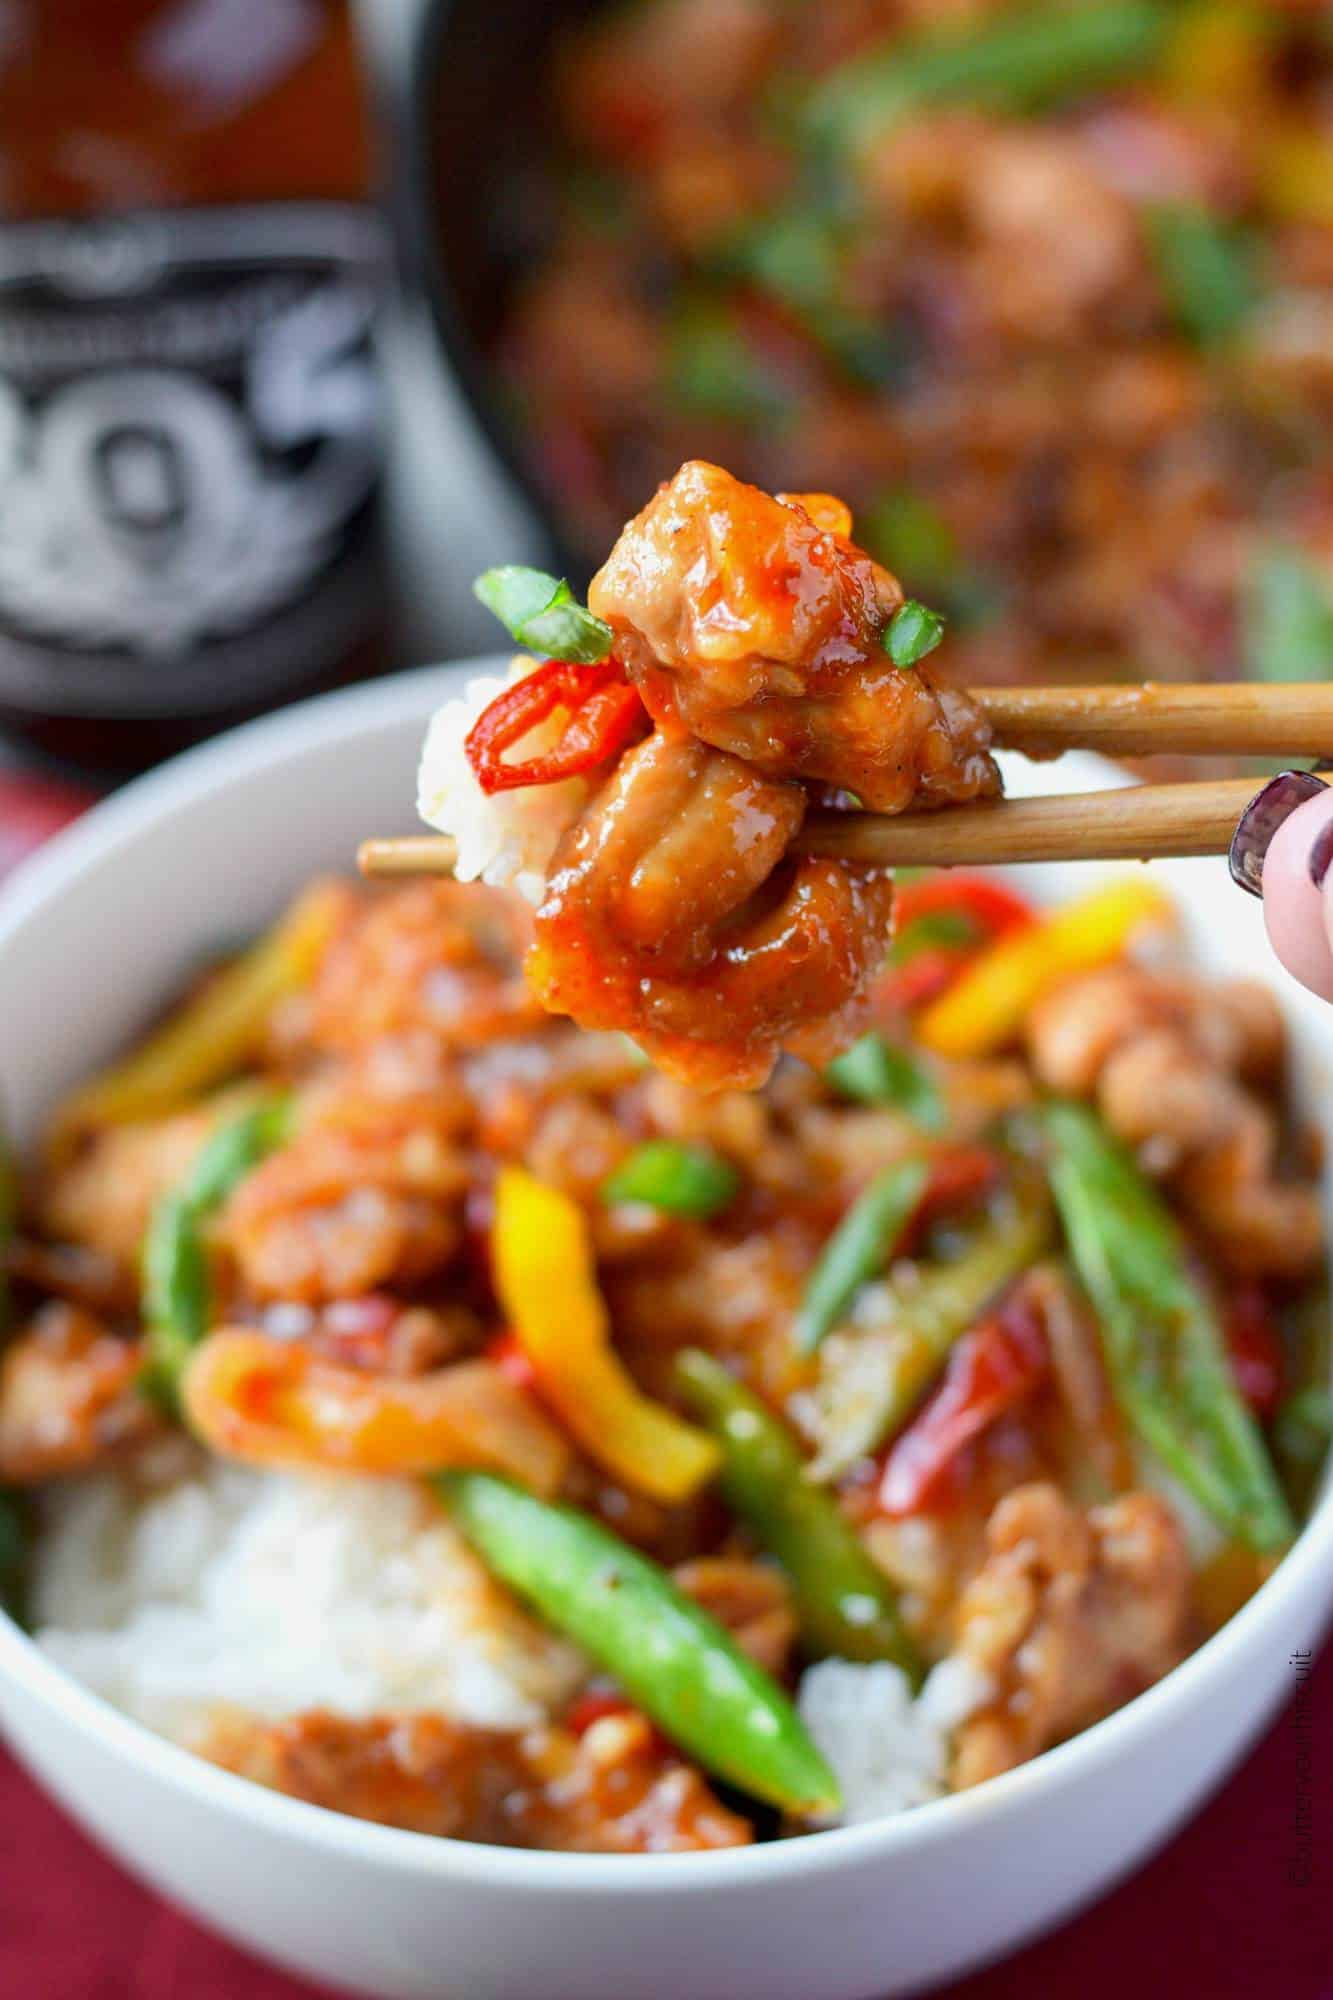 Sweet and Spicy chicken stir fry bite with chopsticks